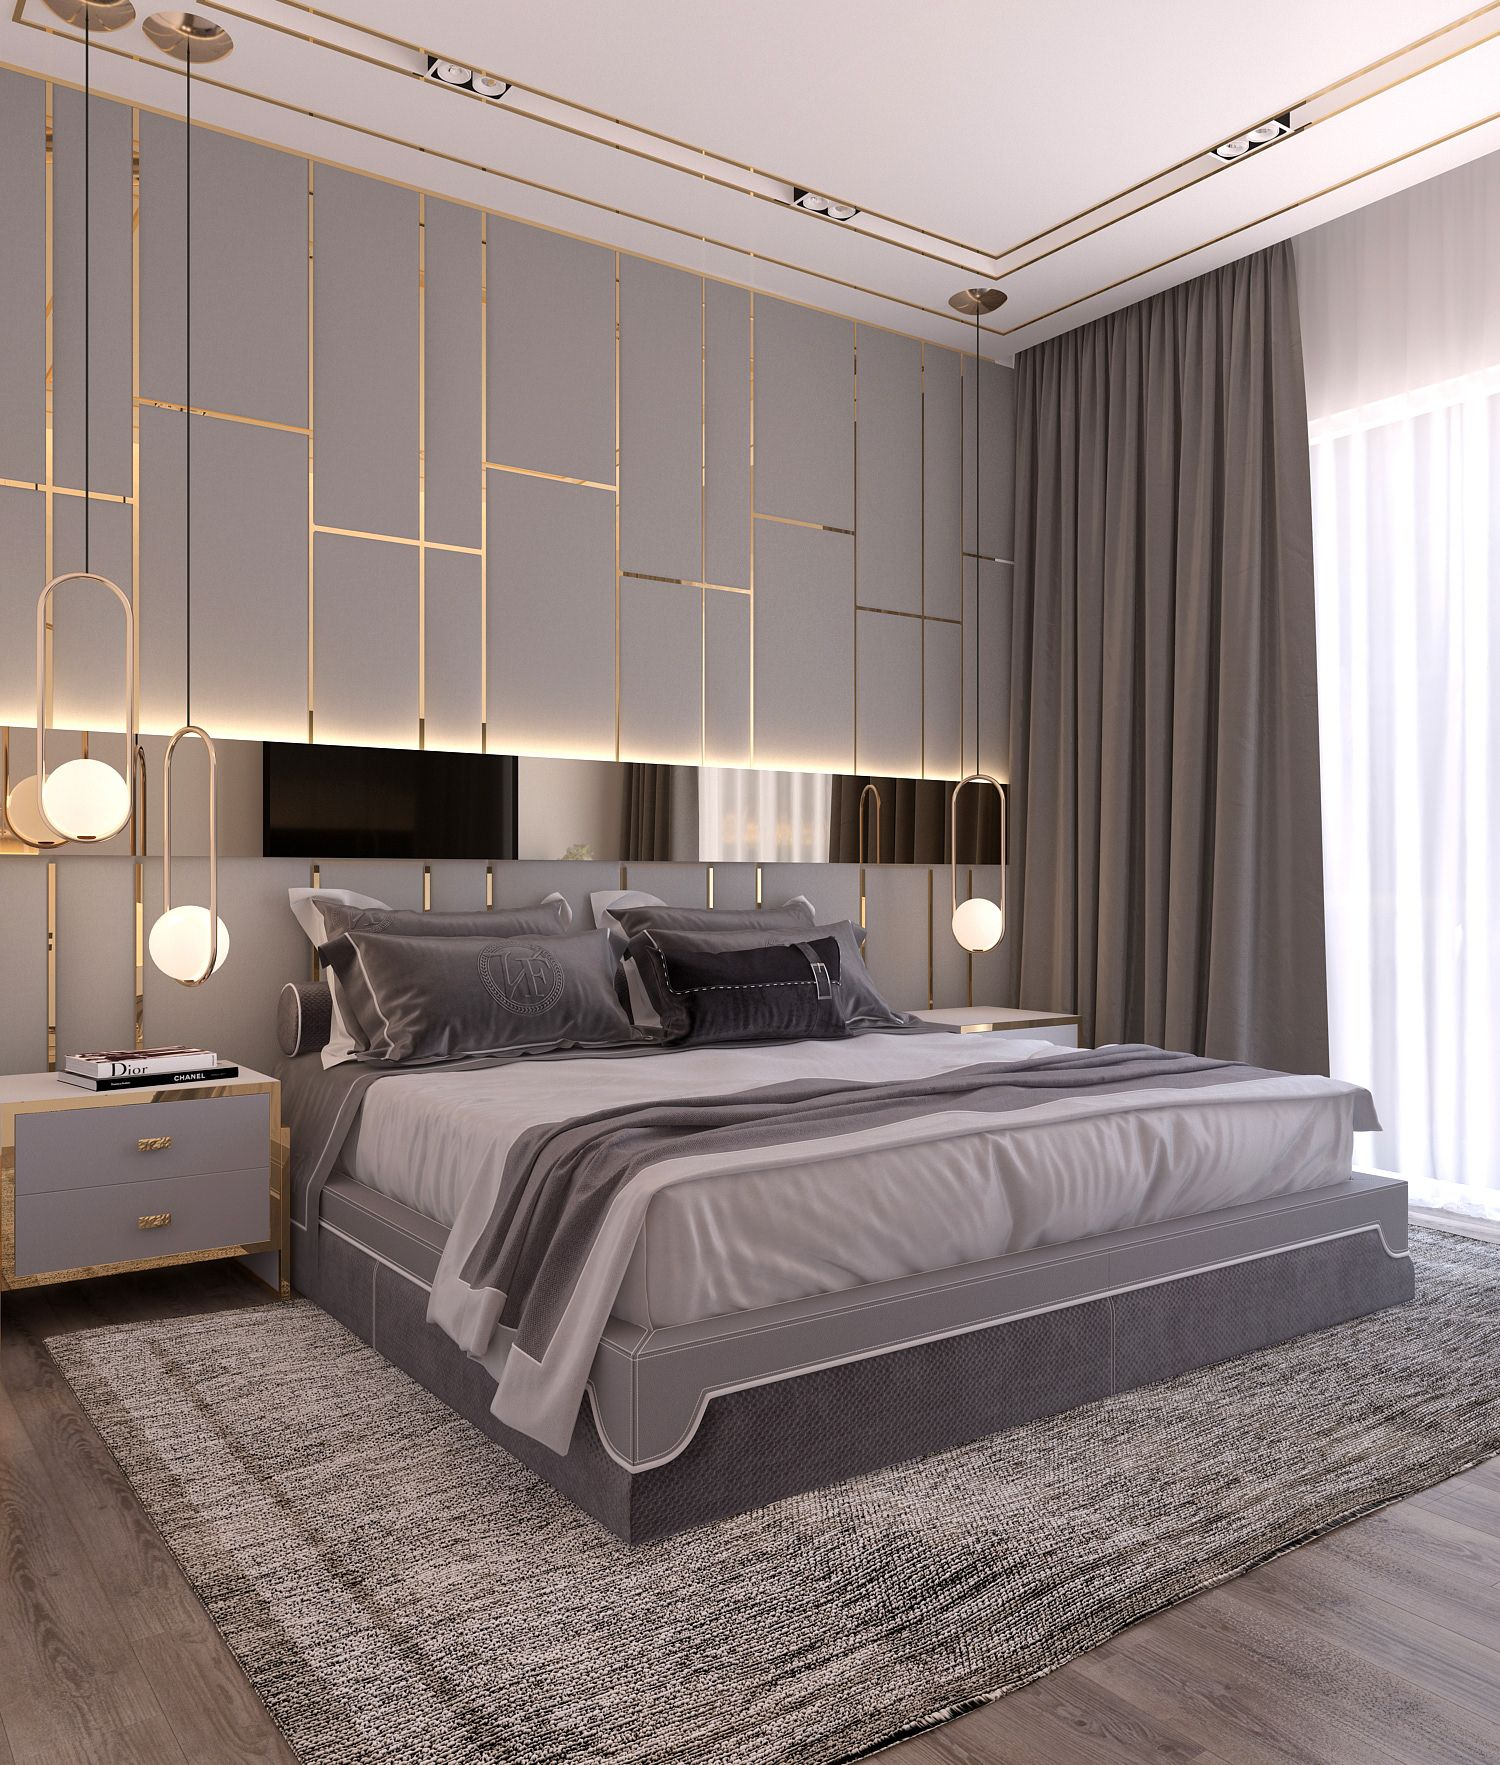 Modern Style Bedroom Dubai Project On Behance Bedrooms In 2019 with Modern Bedroom Bedding